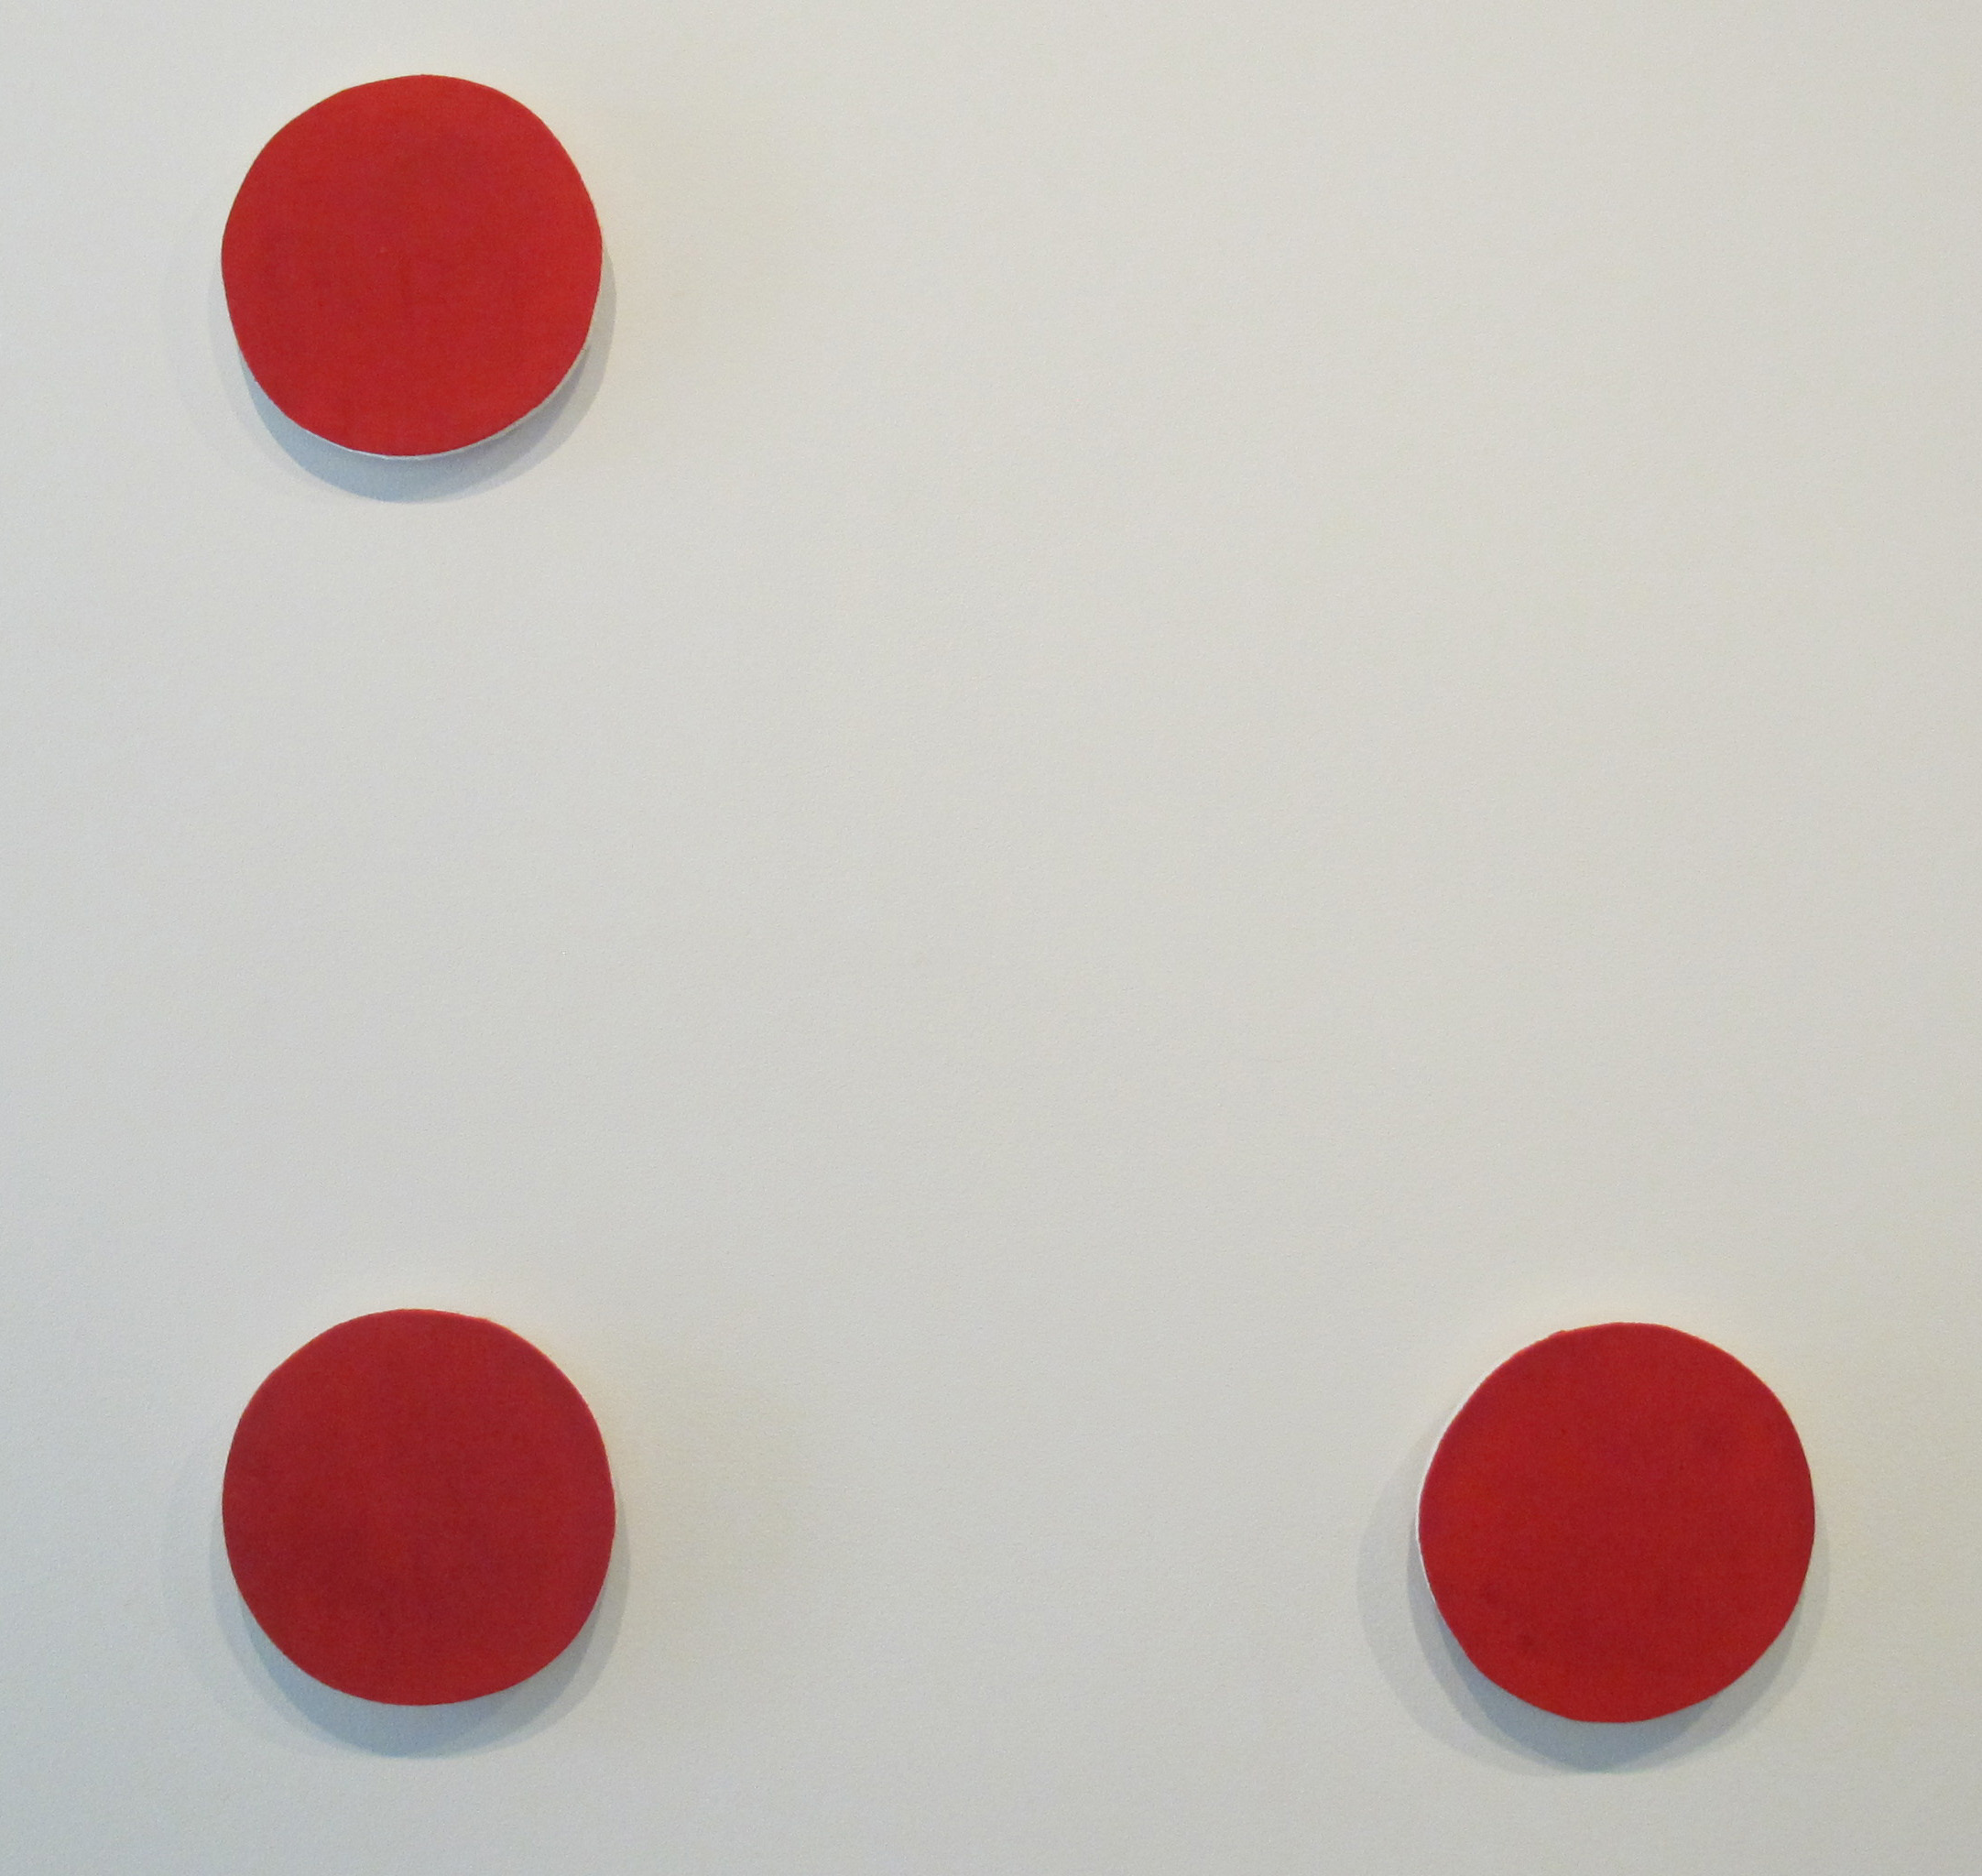 Sarah Keighery,  Additive 16255 (Line) , 2012, food colouring, canvas on plywood, 3 x 20cm discs